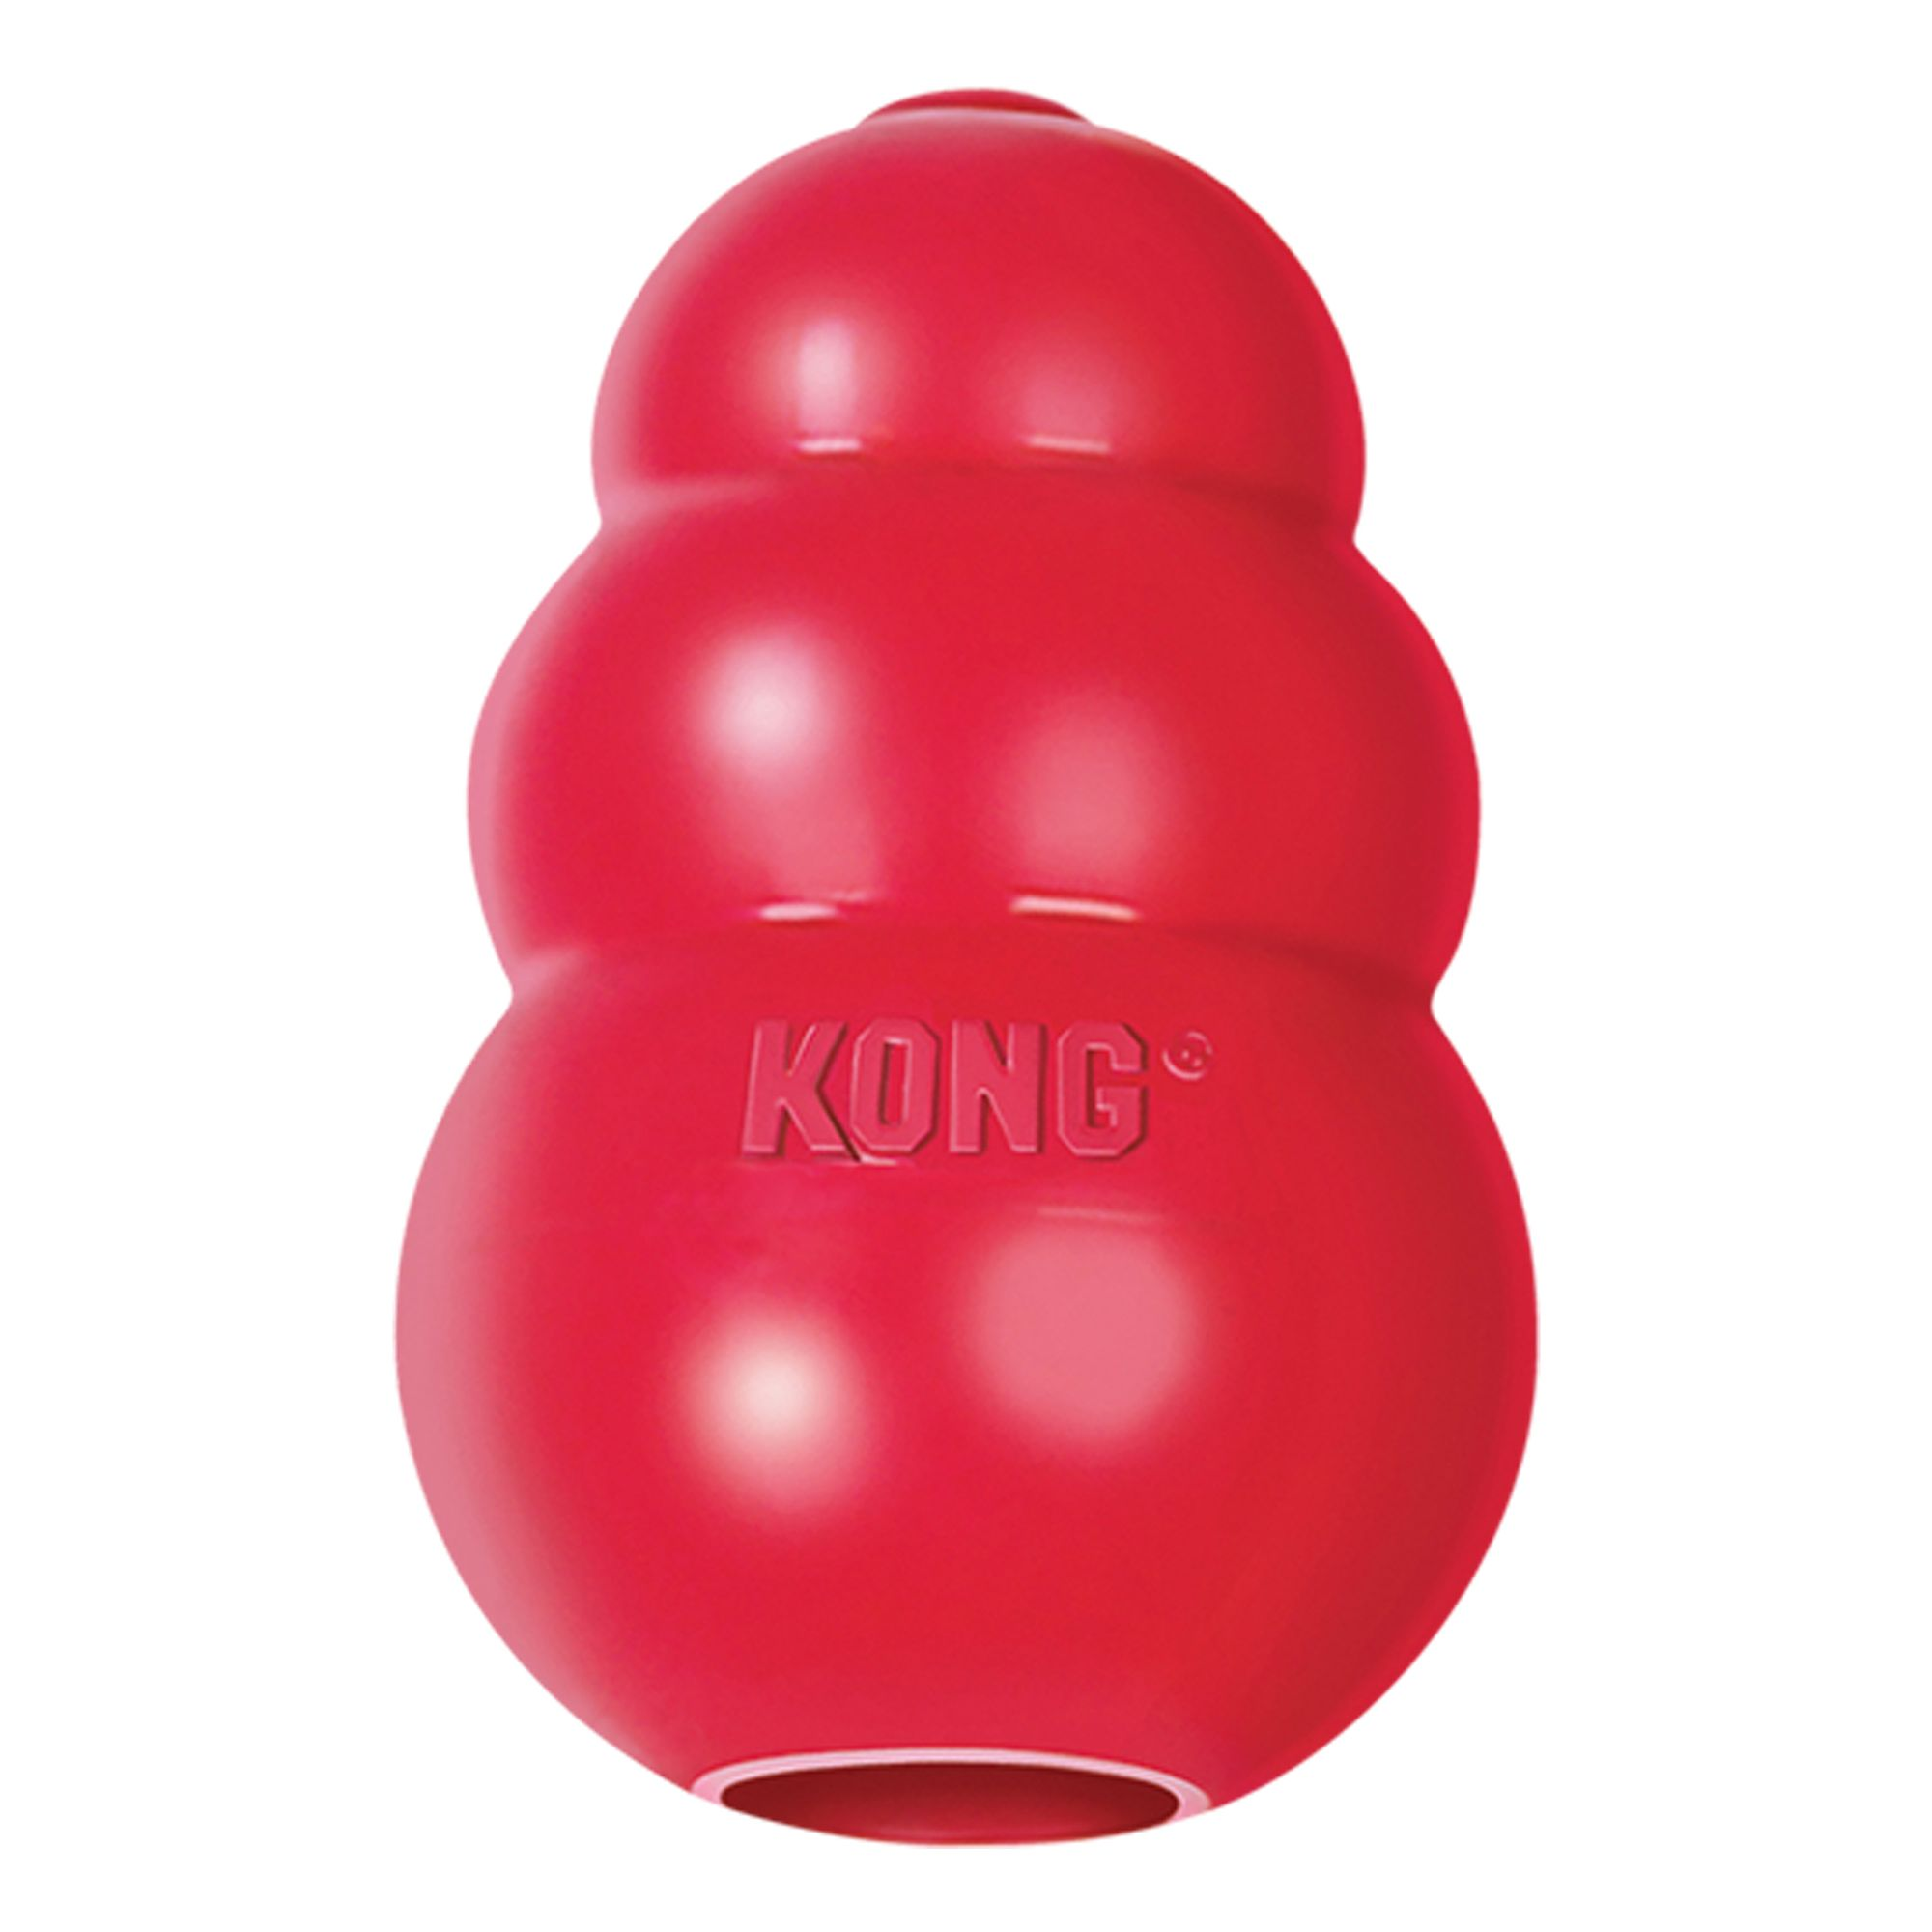 Kong Classic Dog Toy - Treat Dispensing size: Small, Red 1811628